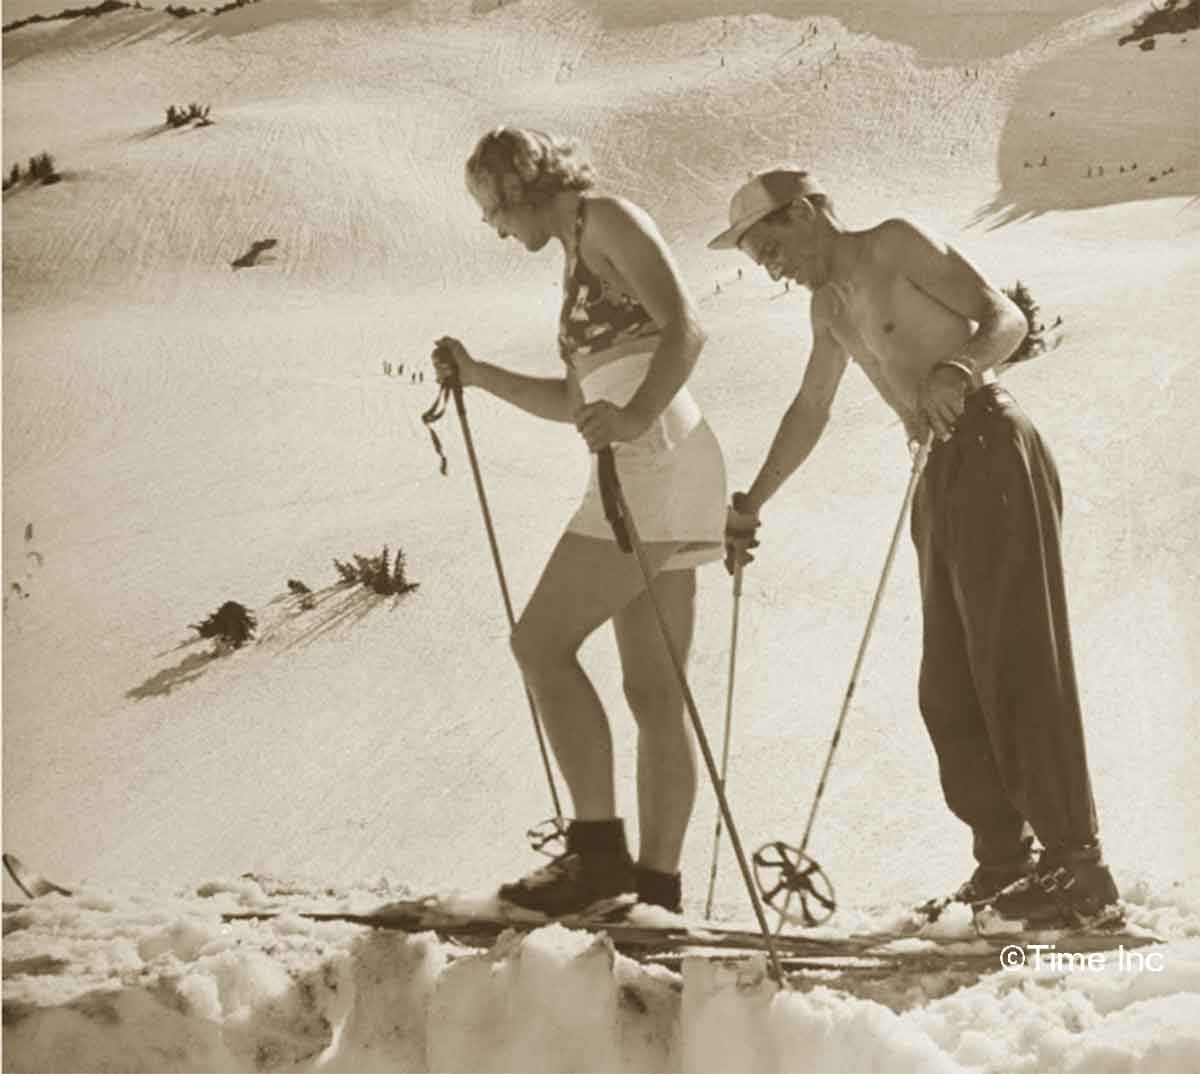 1940s-Fashion---Summer-Skiing-in-1942- Lassen Volcanic National Park